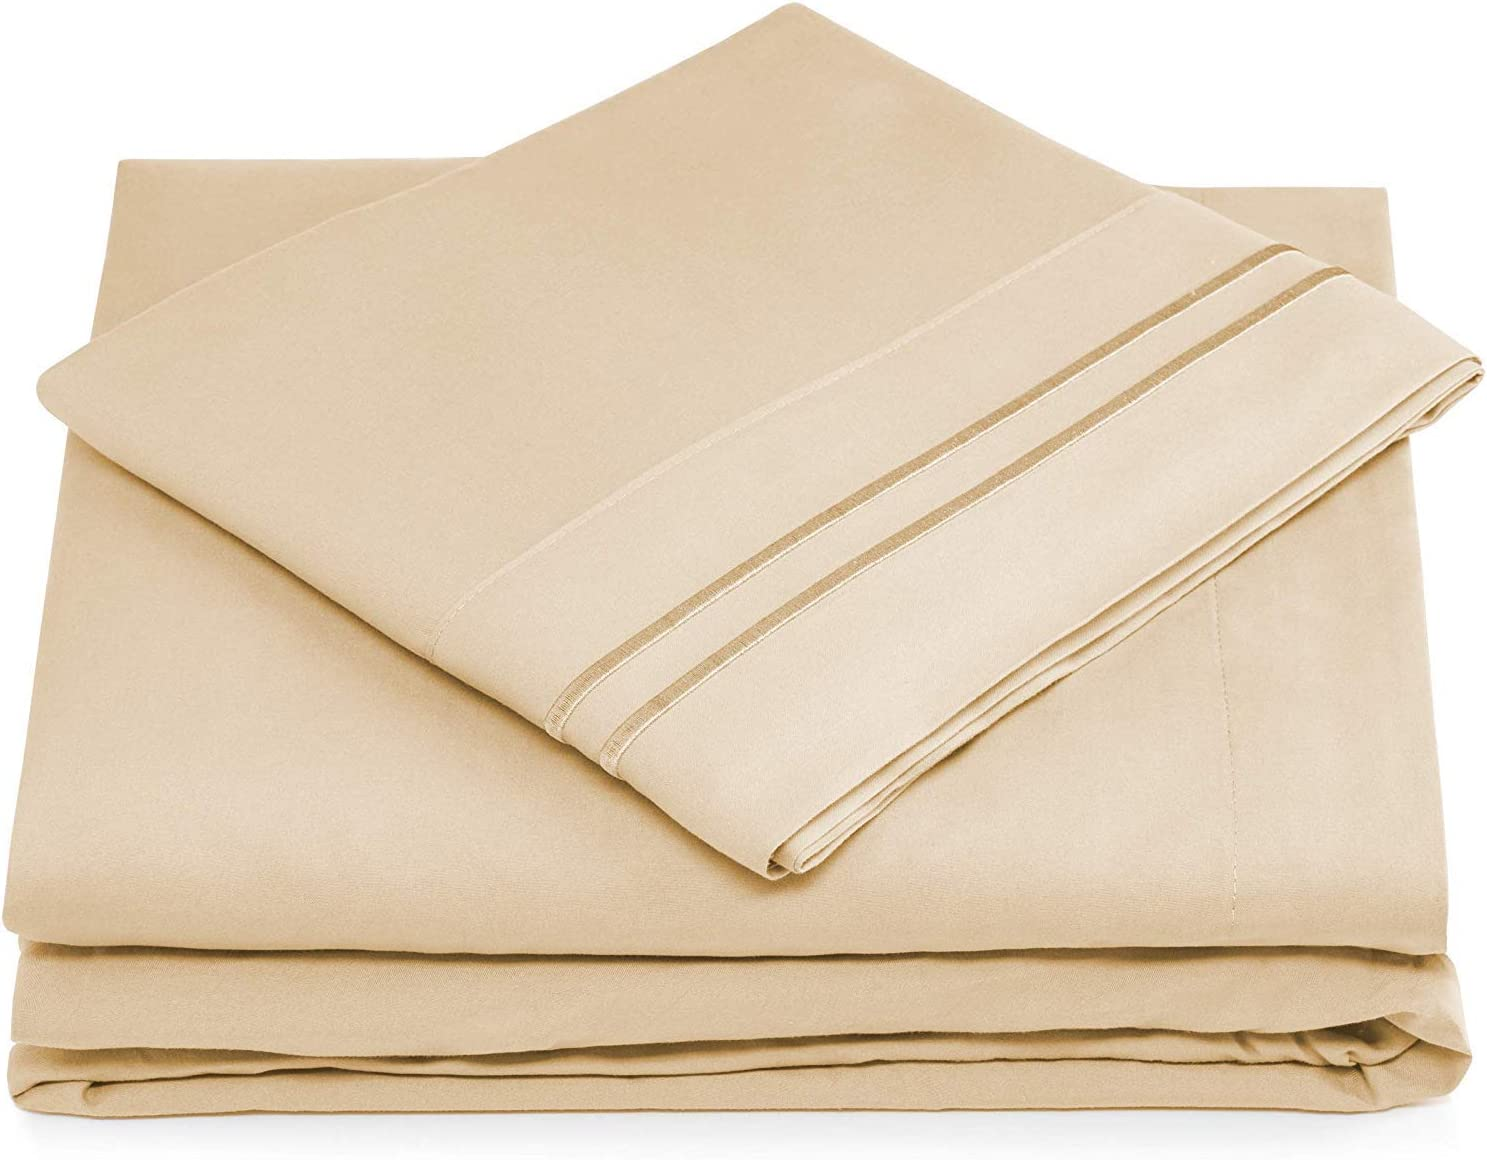 Cosy House Collection Twin Size Sheet Set - 3 Piece - Deep Pocket Twin Bed Sheets - Extra Soft, Hypoallergenic, Cool & Breathable Bedding - Wrinkle, Stain & Fade Resistant Bedset (Twin, Cream)